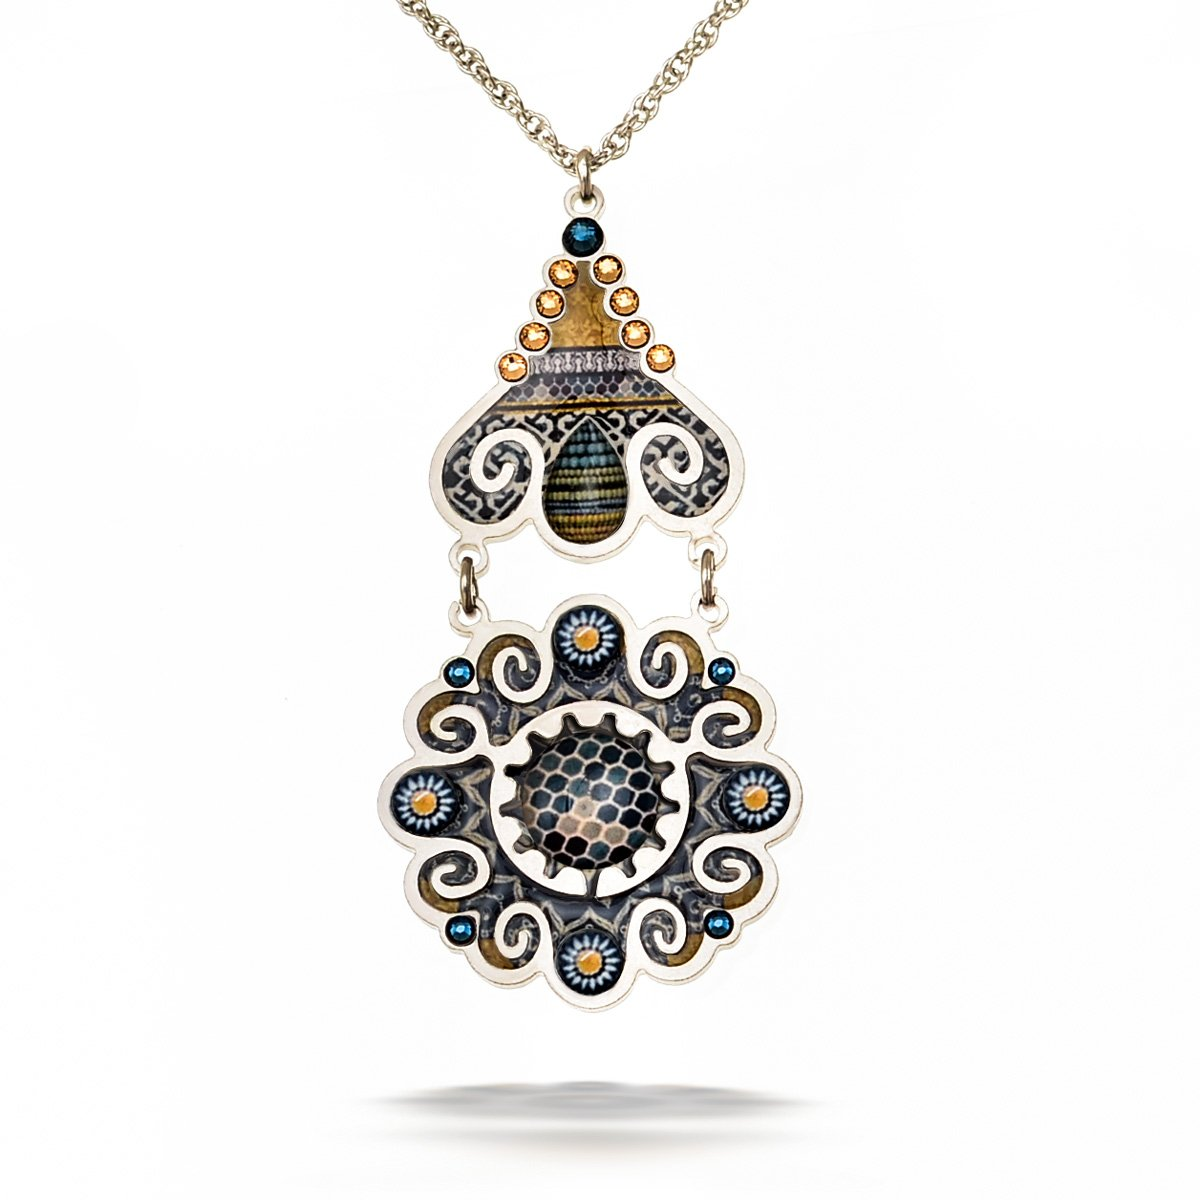 Artazia Mediterranean Blue and Golden Tones Marrakech Fashion Necklace N5609